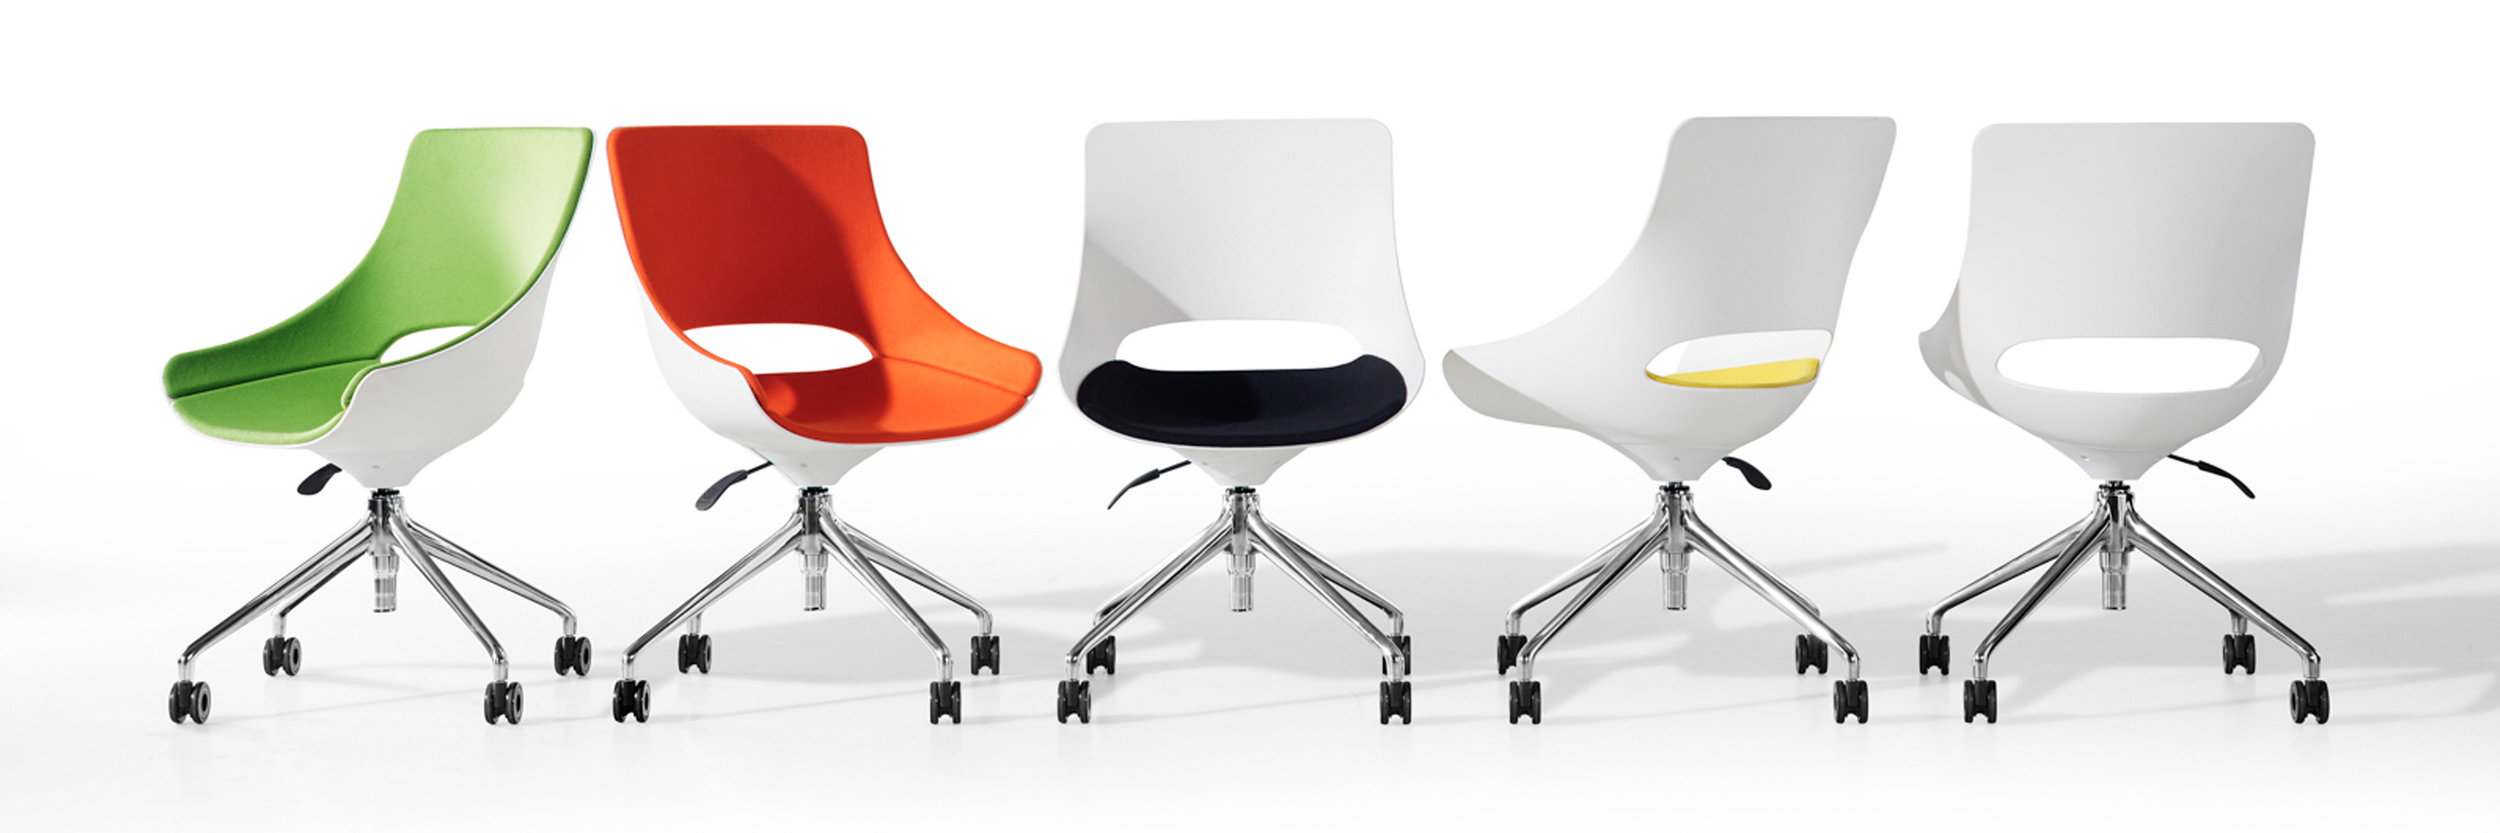 Jones-and-Partners-Touch-office-seating-10.jpg